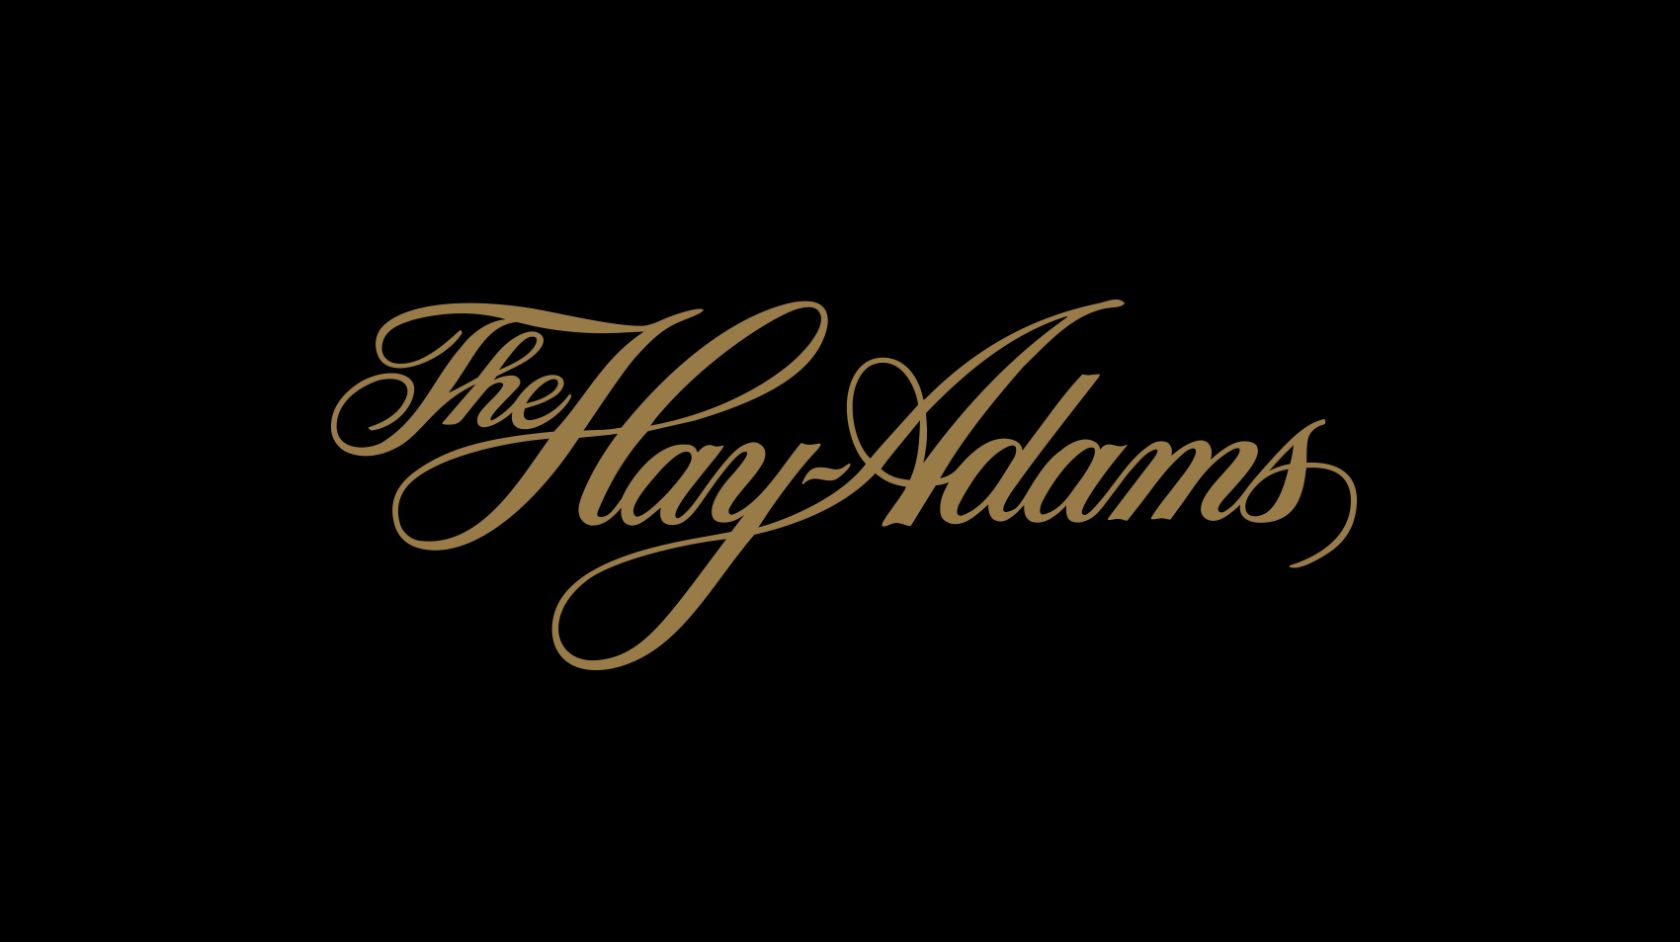 Hay-Adams gold logo on black background